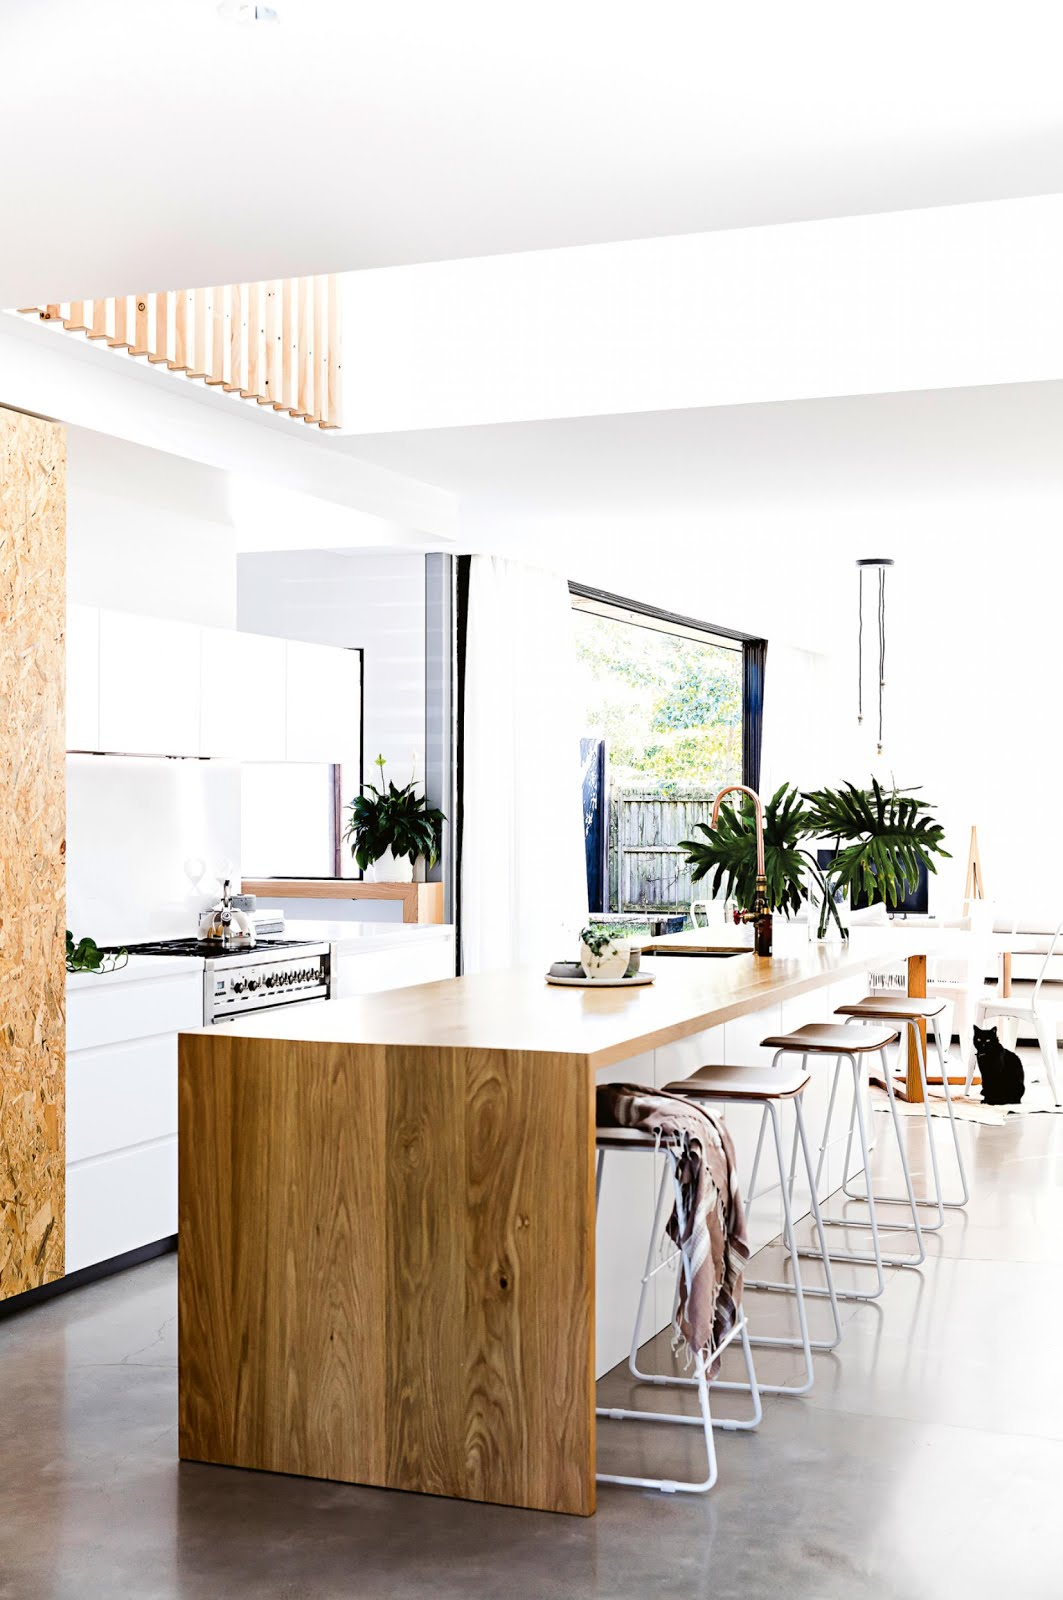 So Today, We Have Guest Contributor Daisy, Sharing A Step By Step Guide To  A Complete Kitchen Remodel.